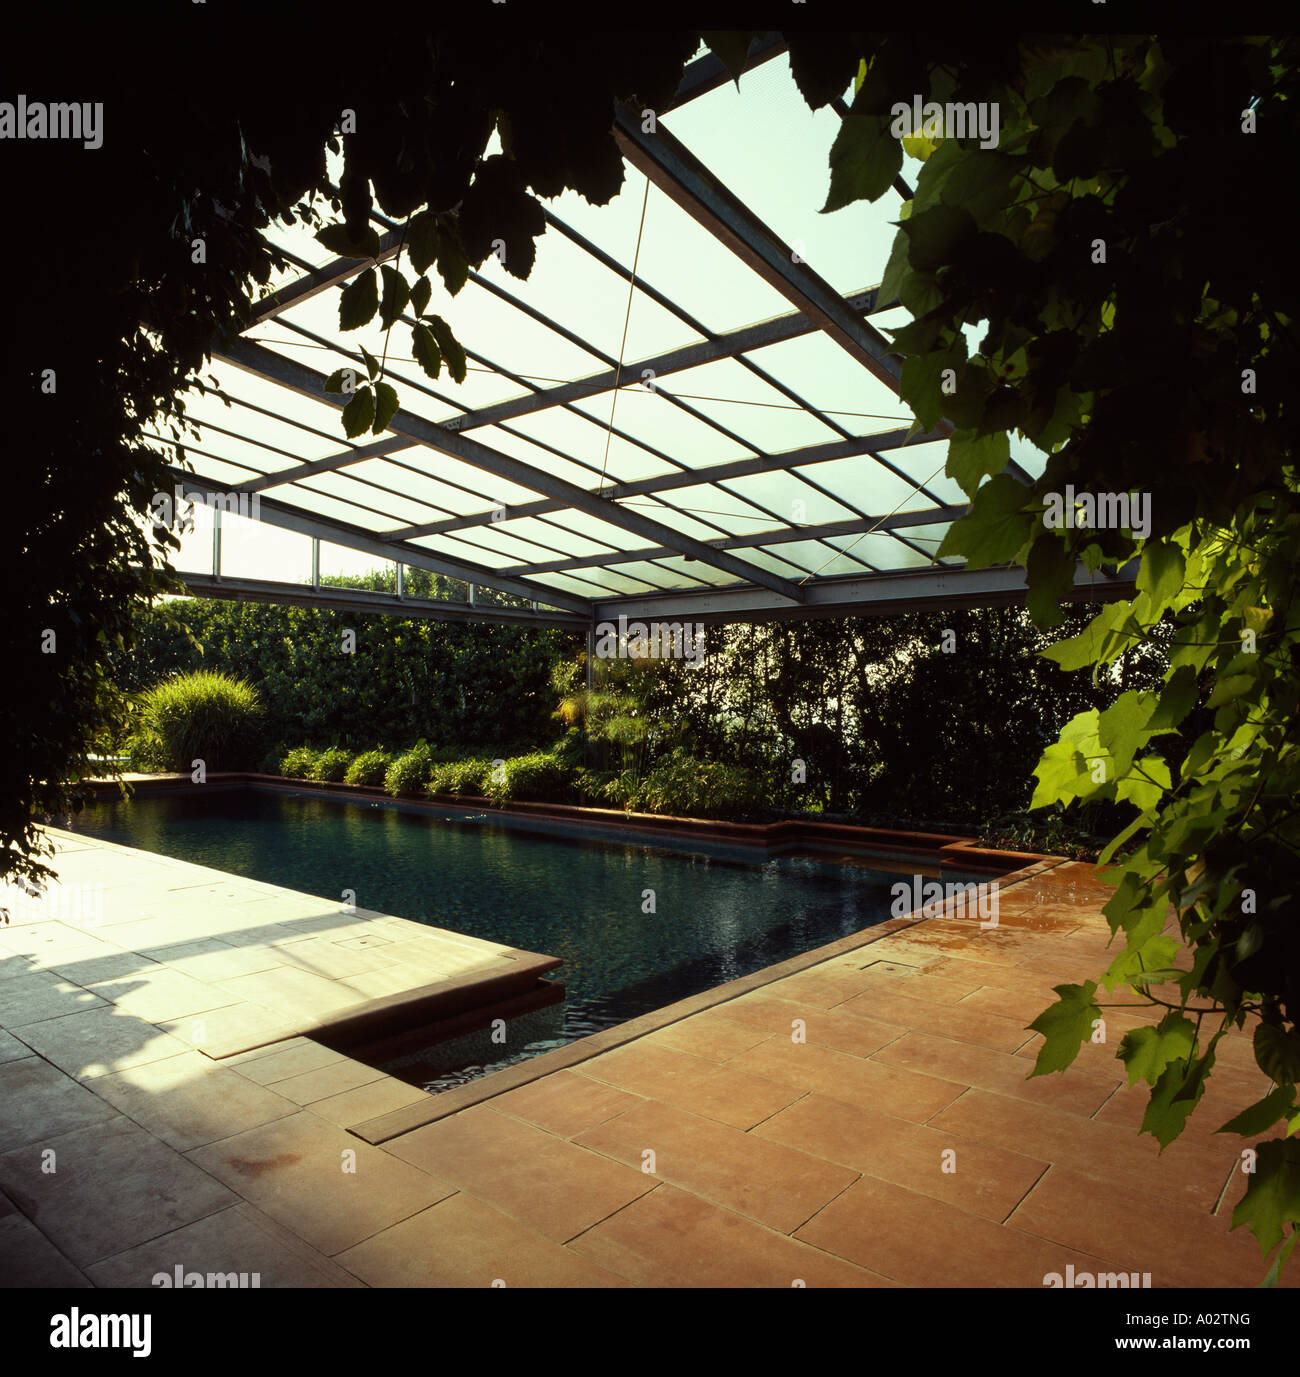 Retractable Glass Roof Above Indoor Swimming Pool With Terracotta Tiled  Surround